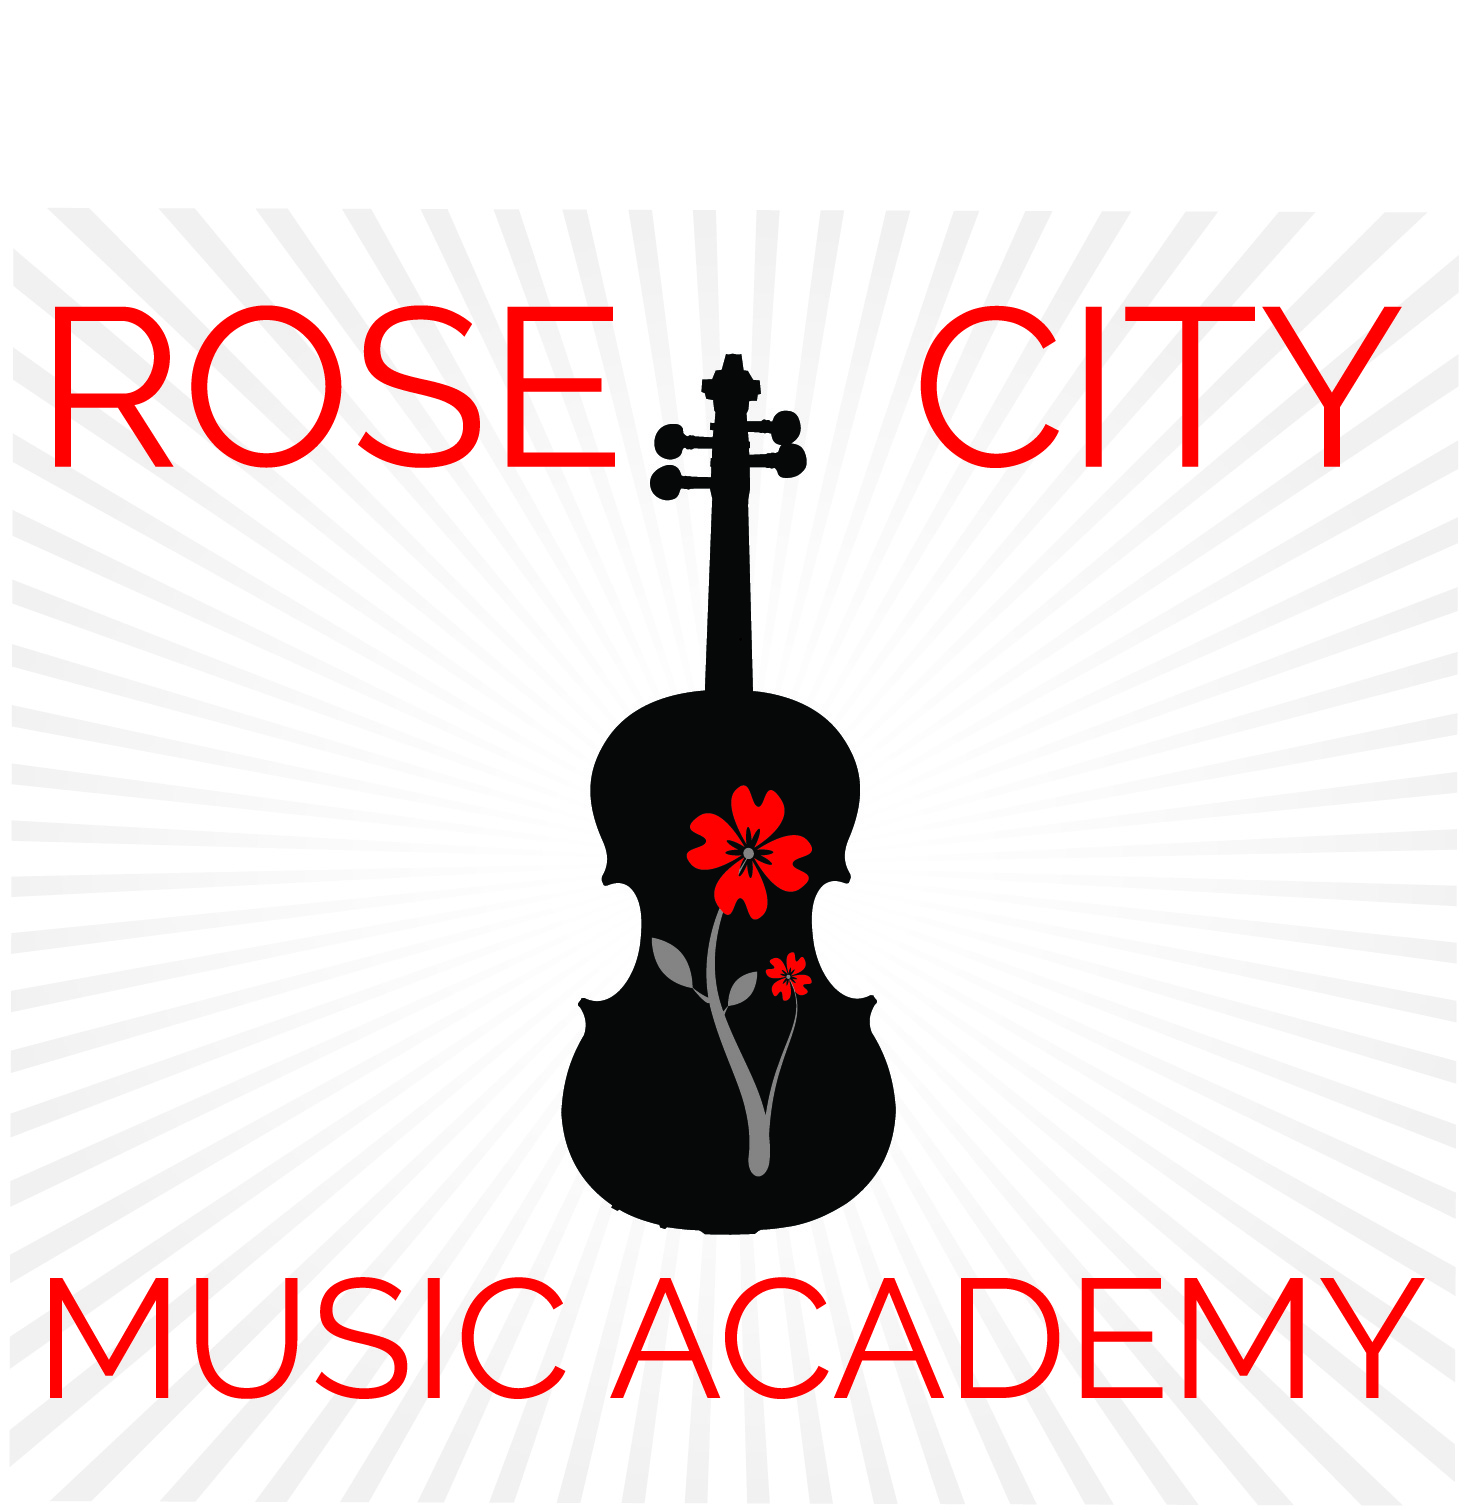 Rose City Music Academy